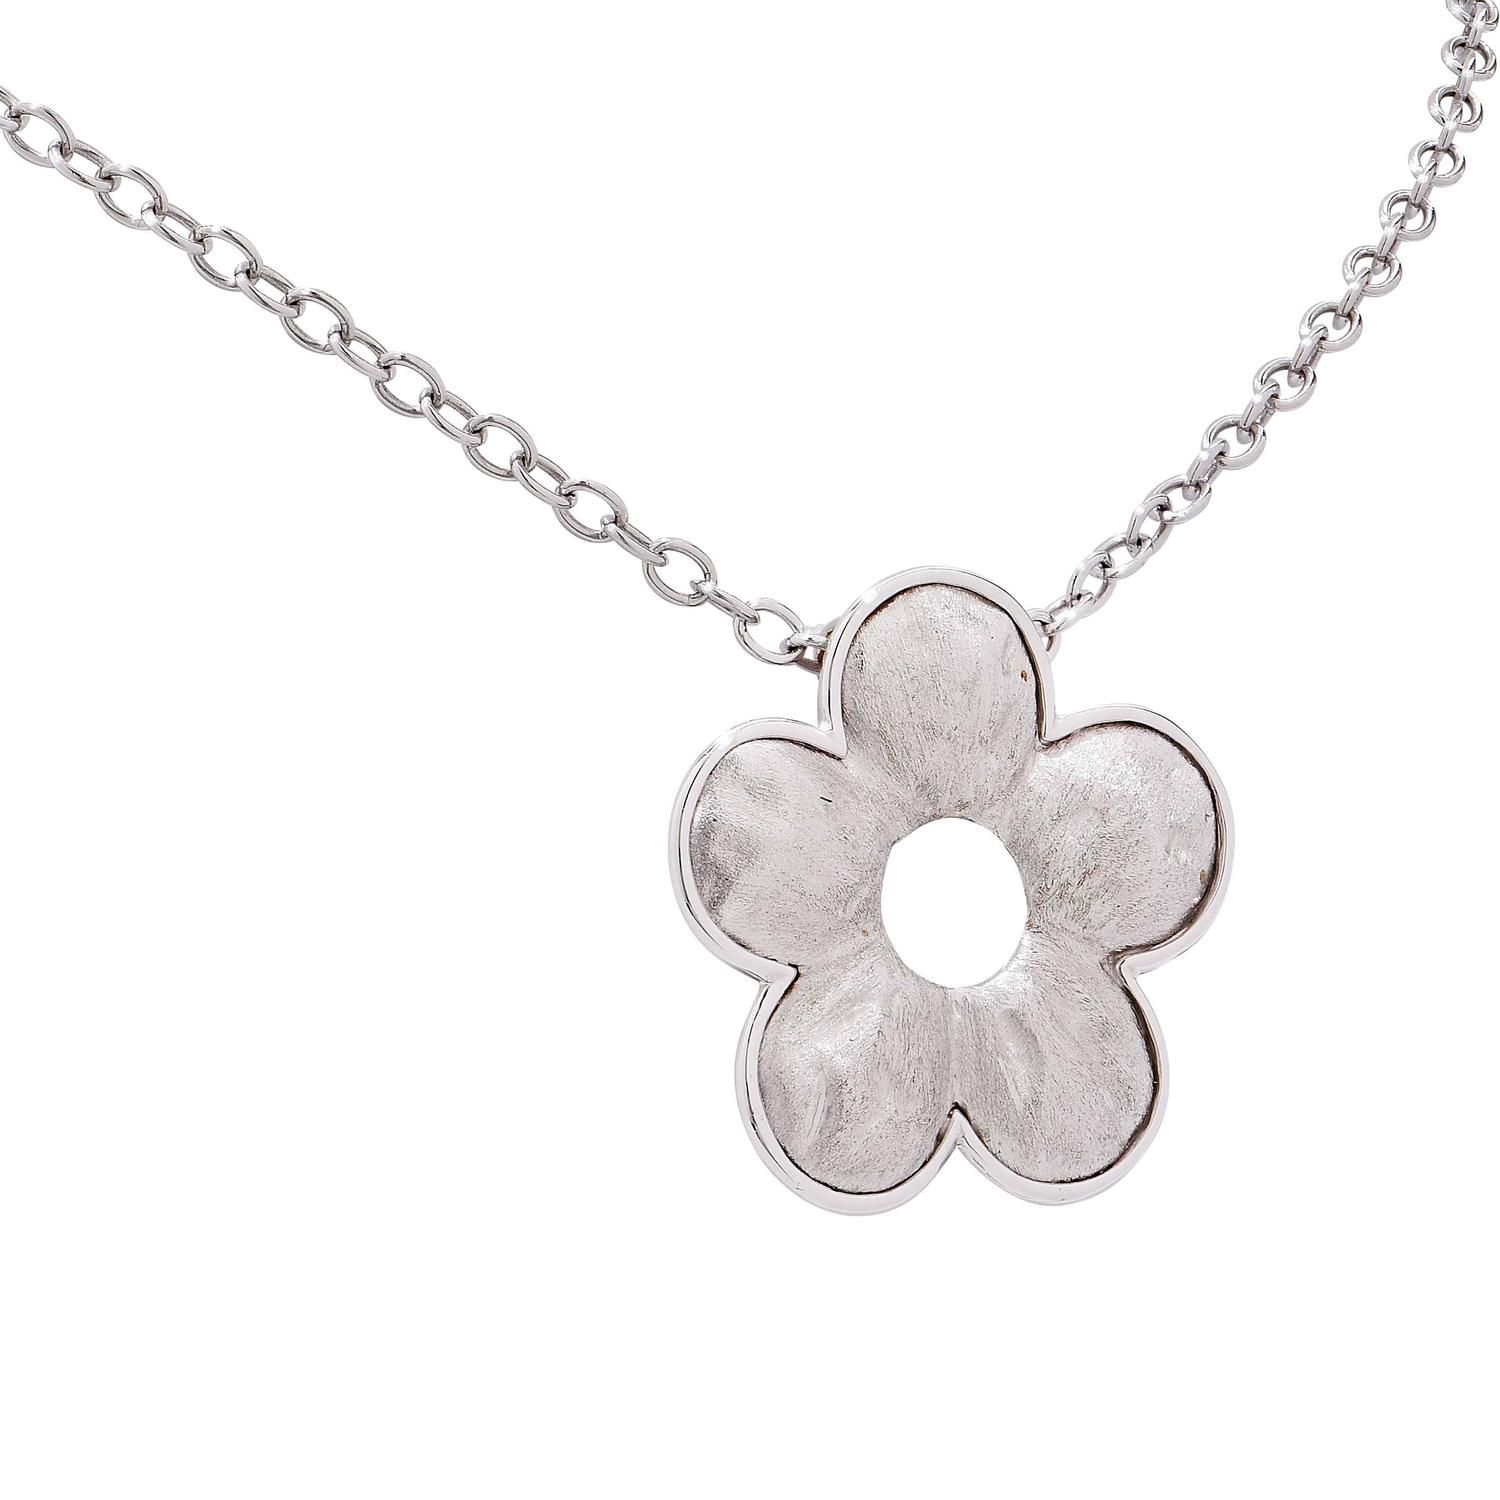 penny white flower preville products gold double pendant laura chain necklace